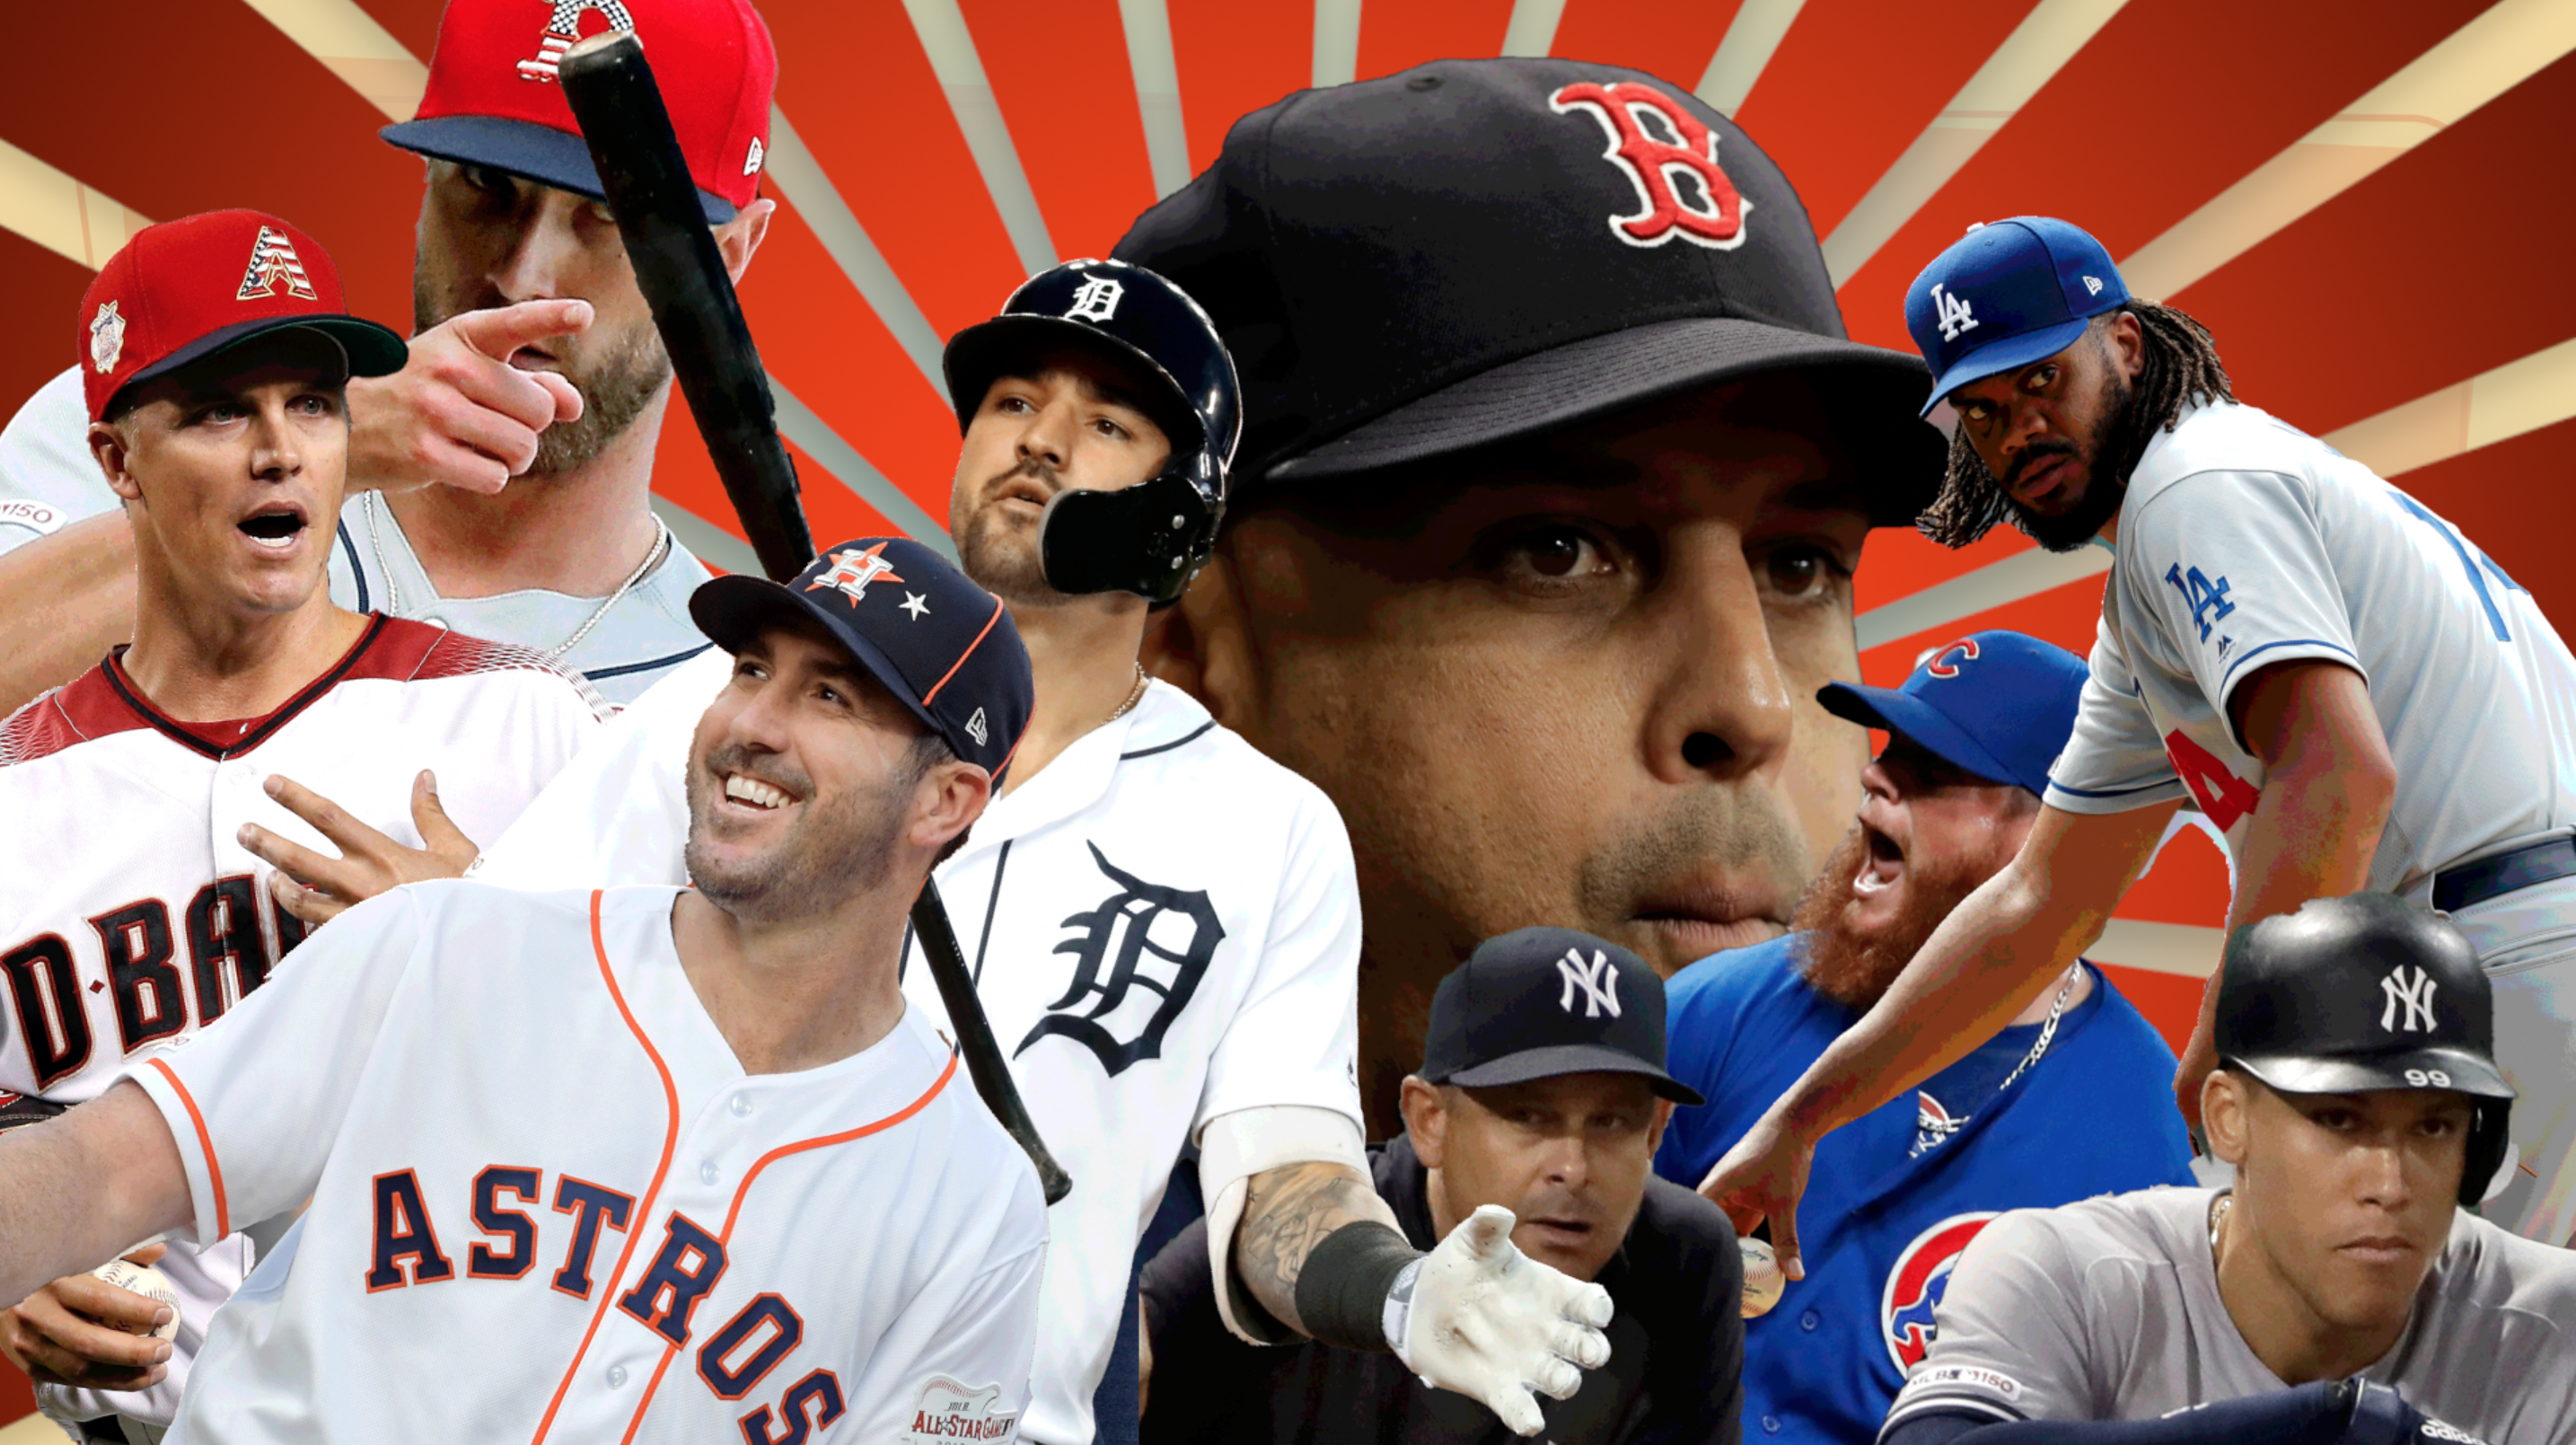 Mlb Trade Deadline Winners And Losers Astros Shock Yankees Sit Still